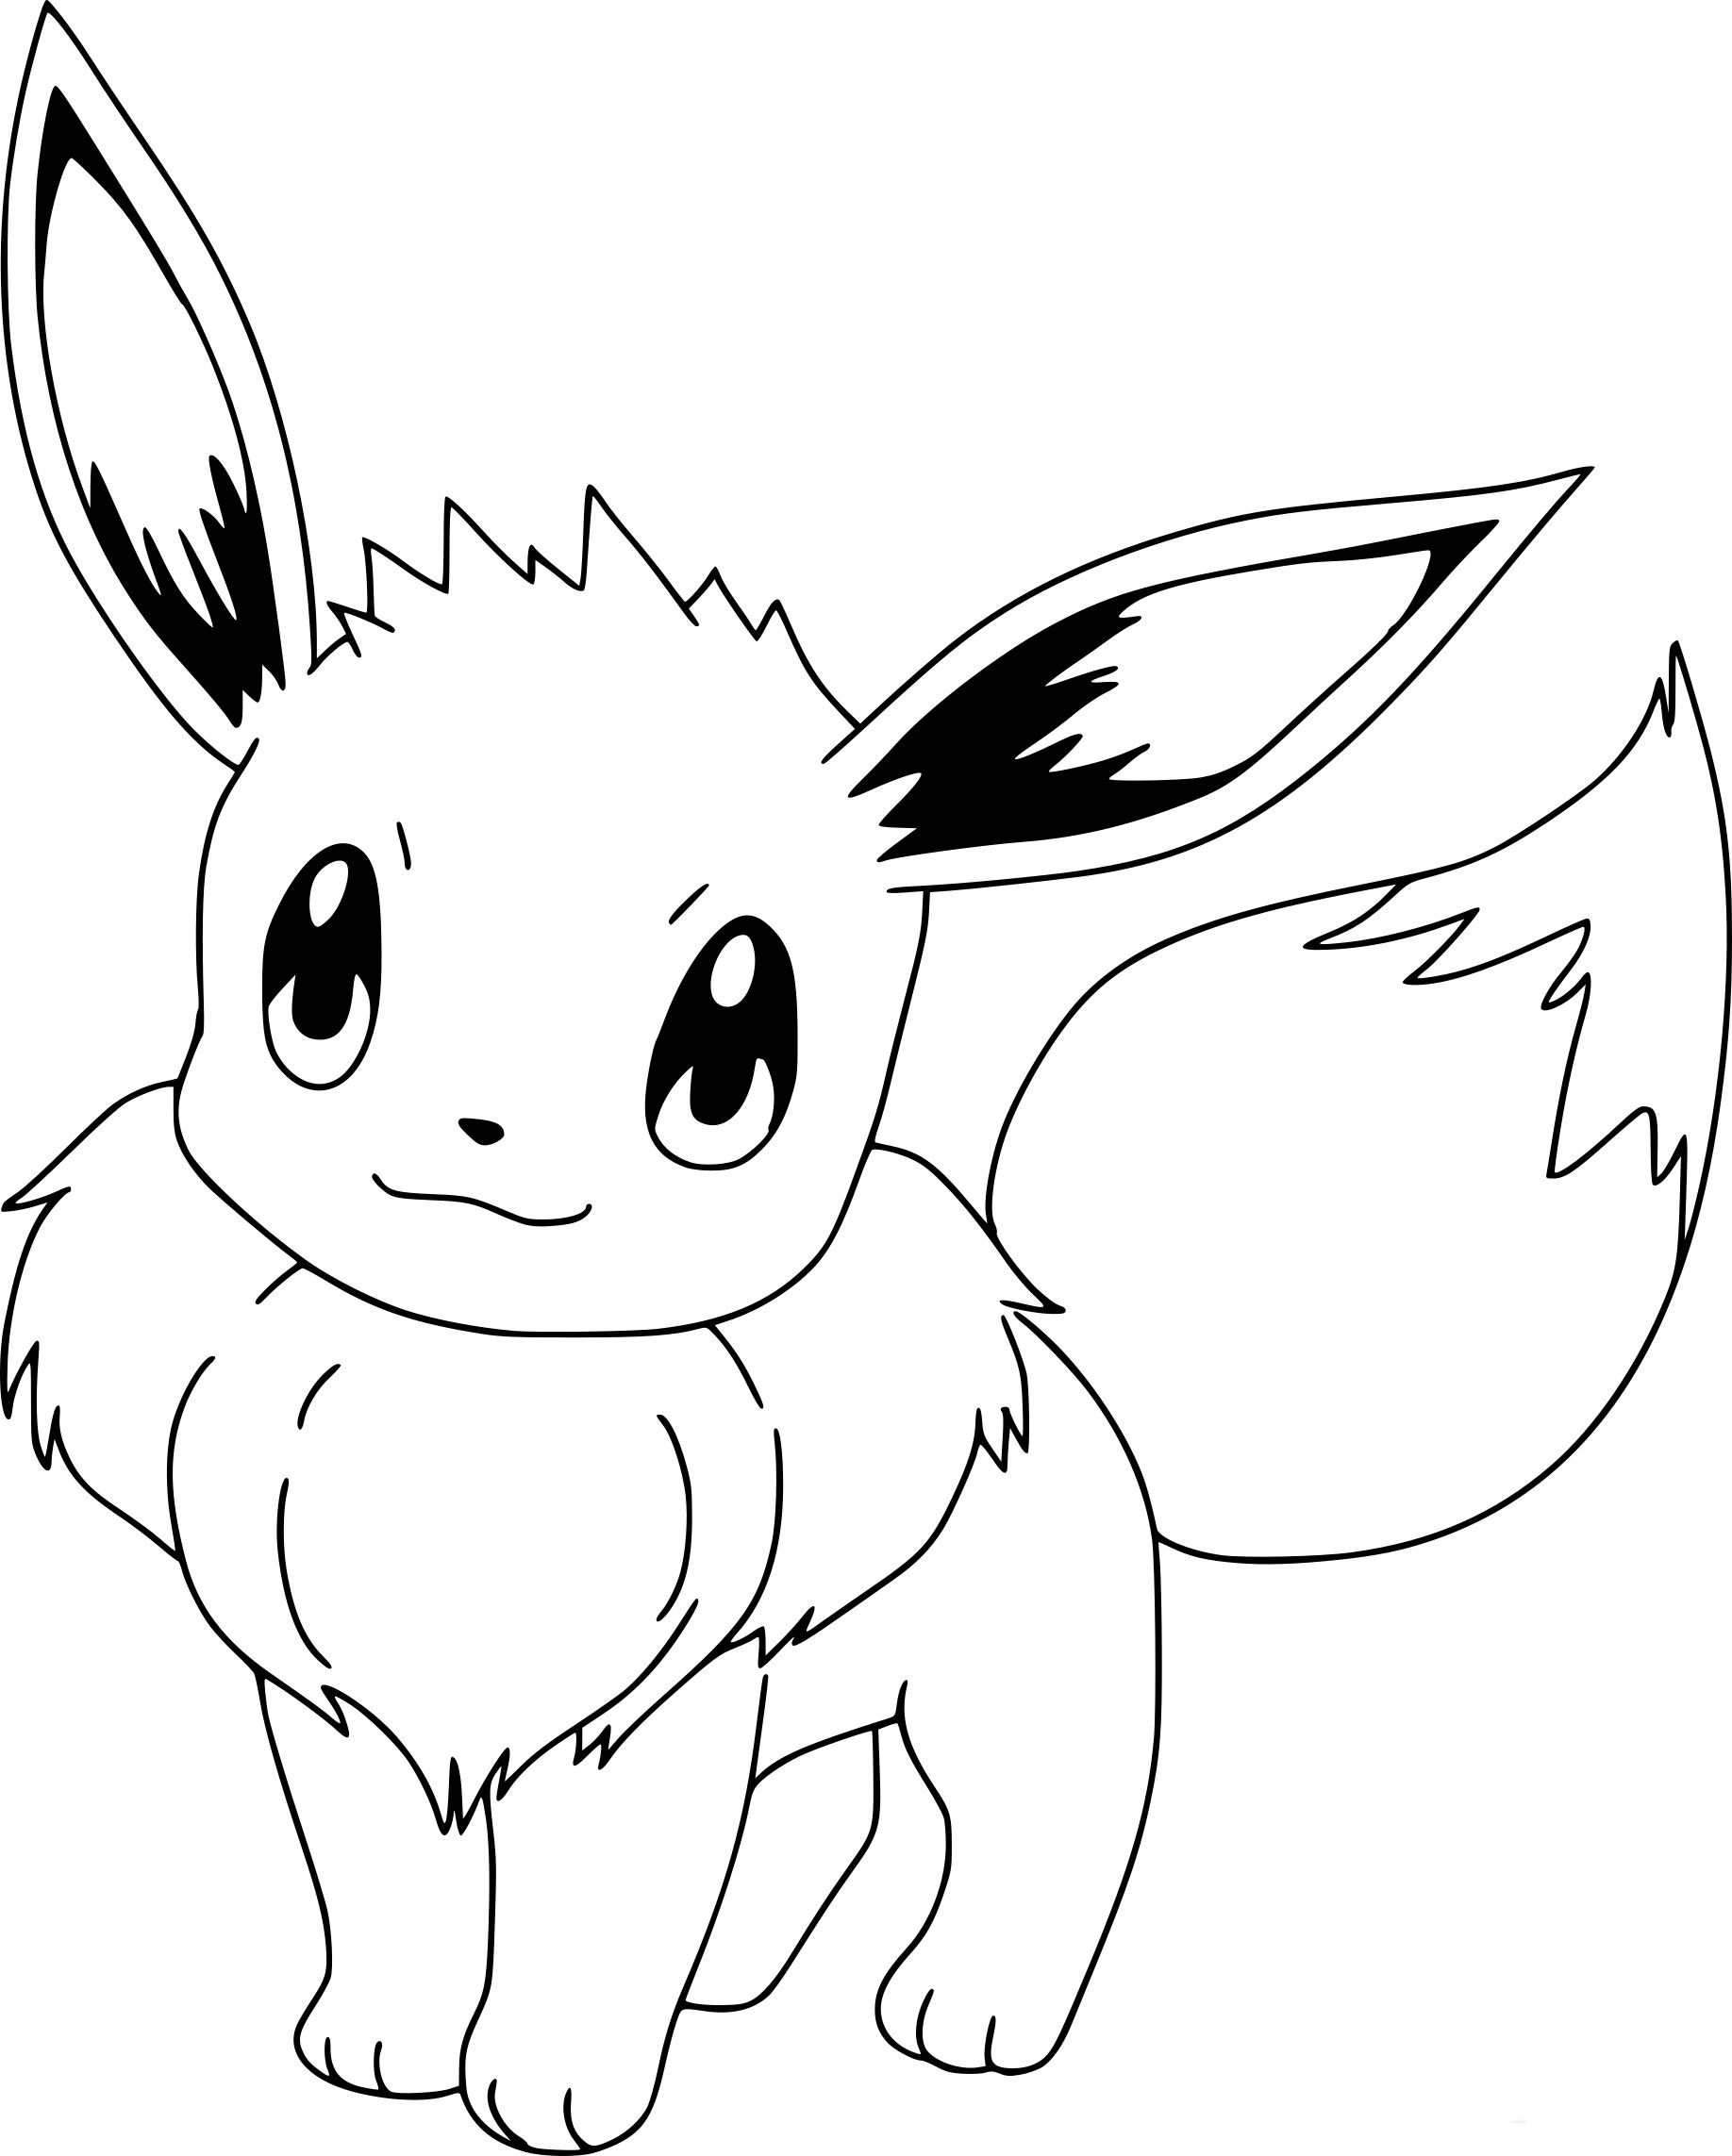 Coloriage pokemon evoli dessin imprimer sur coloriages info - Dessins pokemon ...